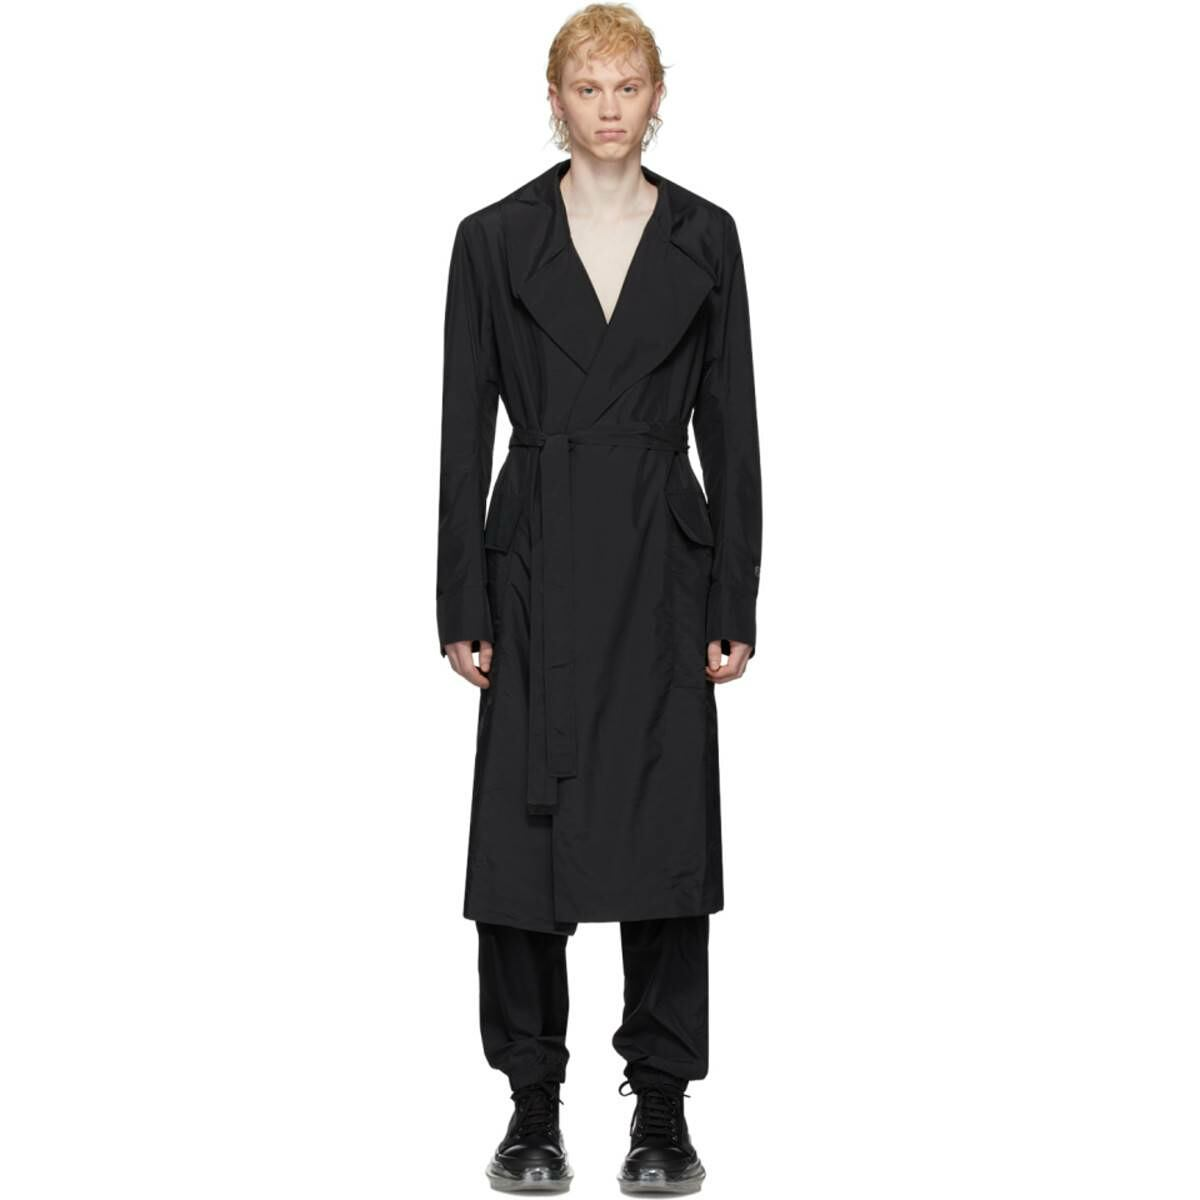 Rick Owens Black Champion Edition Nylon Trench Coat Ssense USA MEN Men FASHION Mens COATS